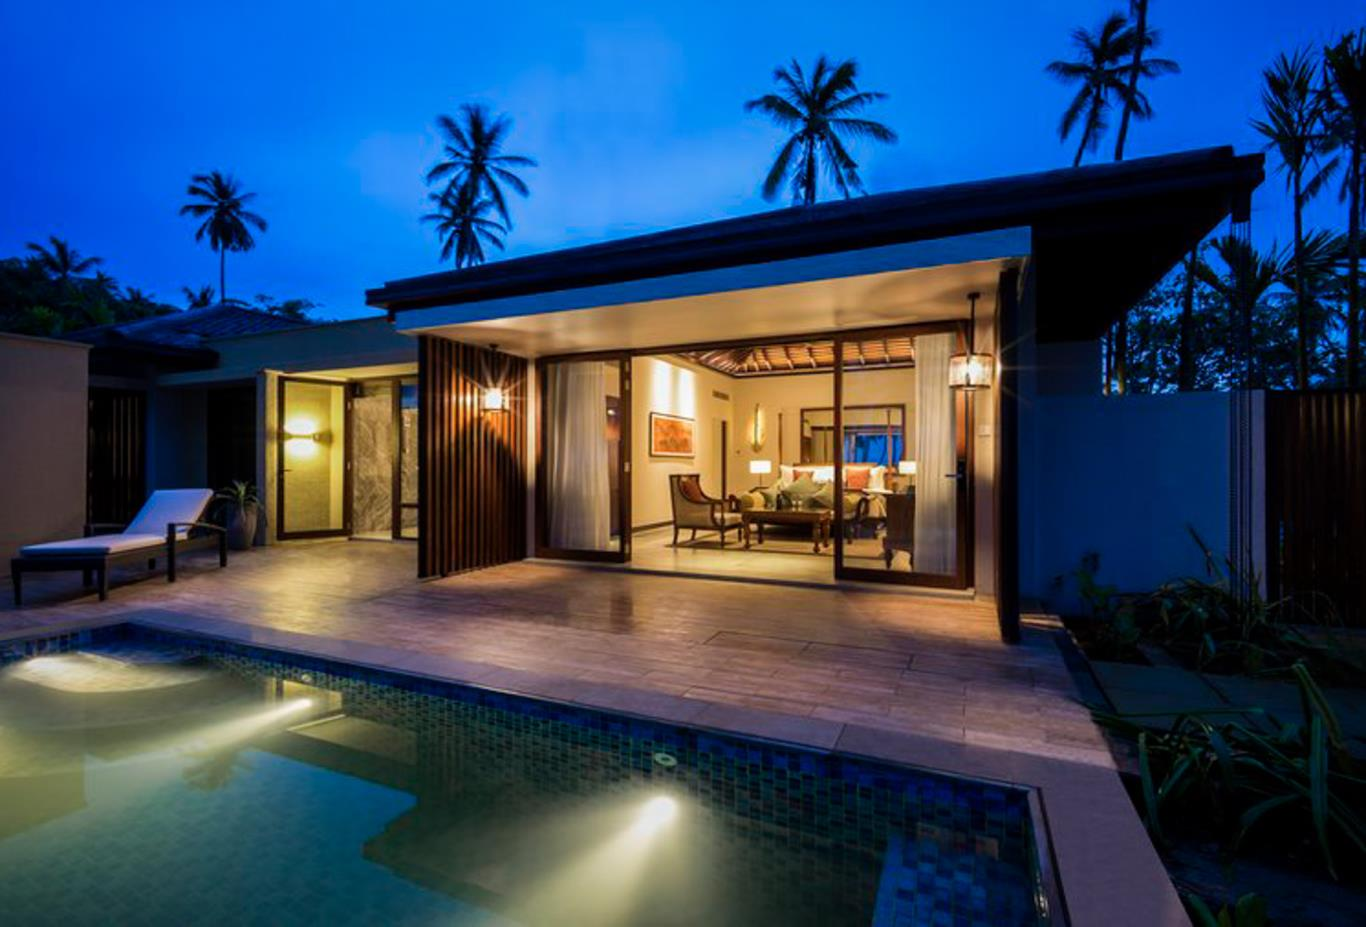 Beach Pool Villa exterior at dusk